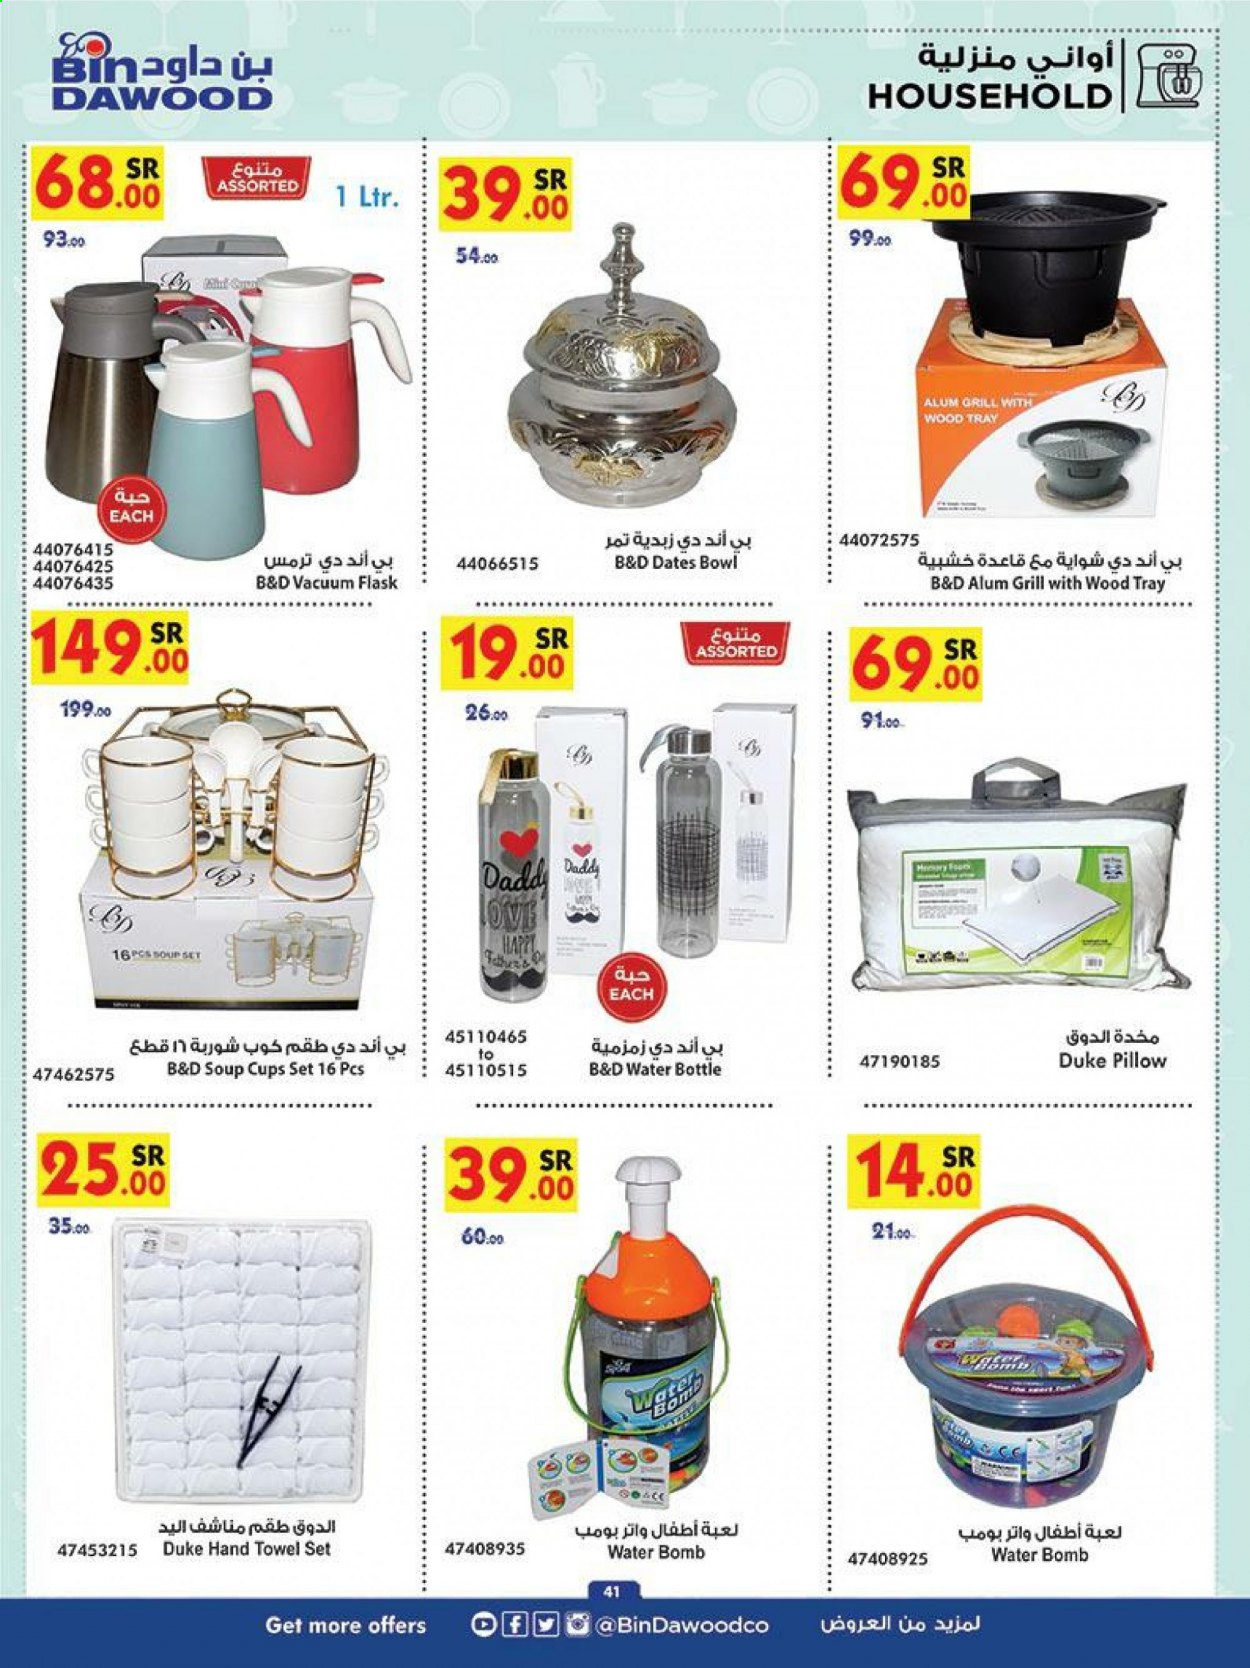 <retailer> - <MM.DD.YYYY - MM.DD.YYYY> - Sales products - ,<products from offers>. Page 41.